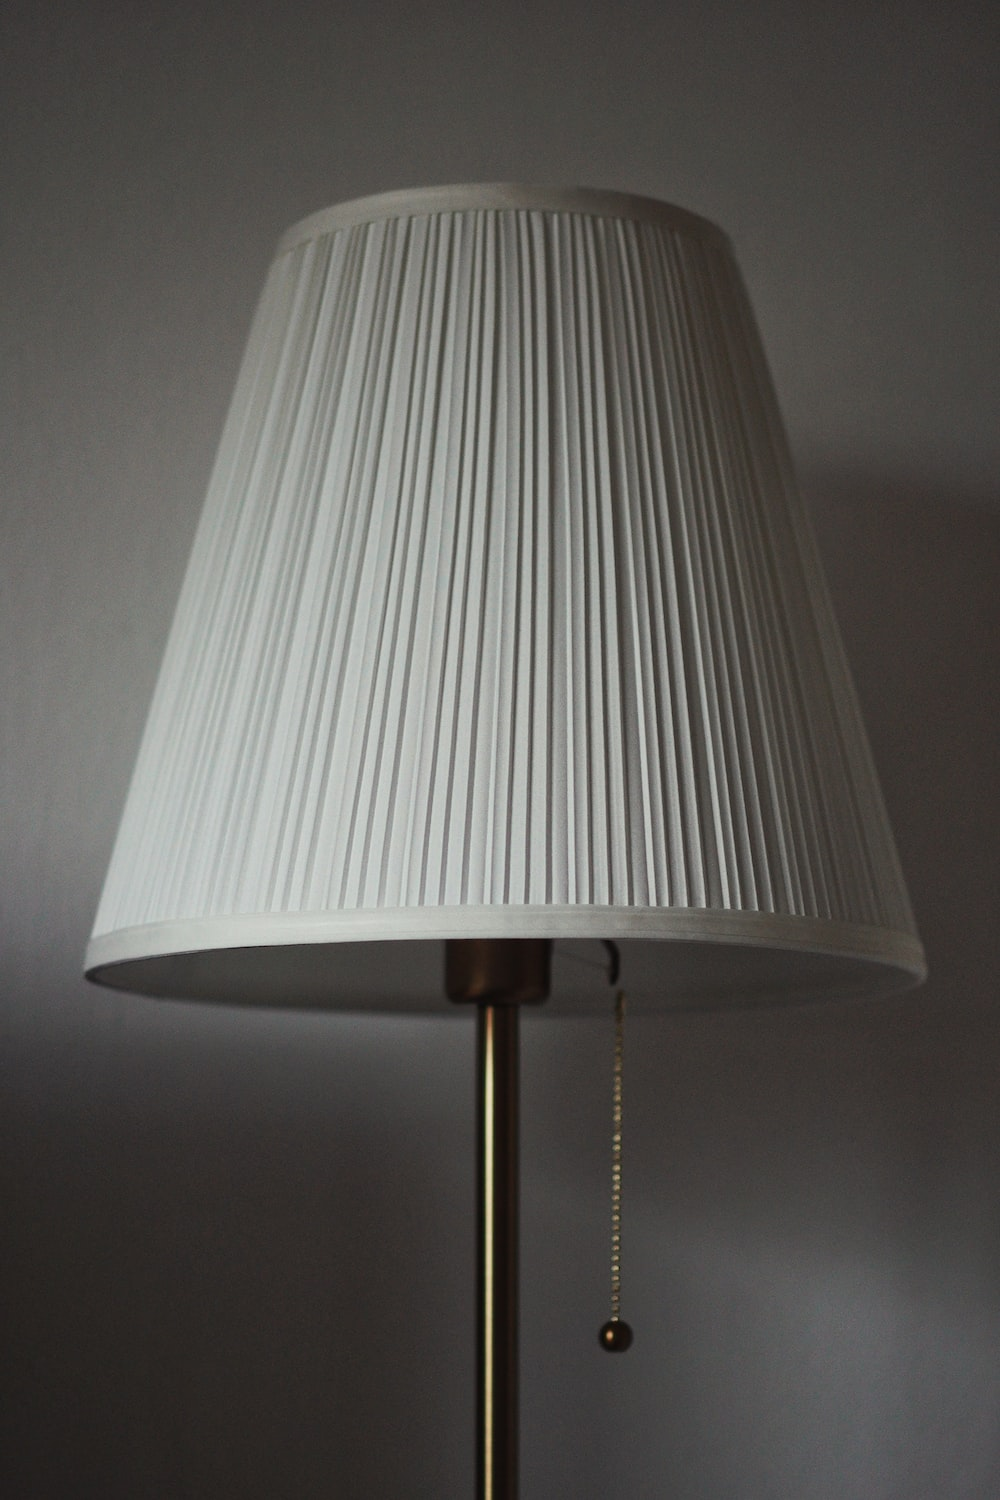 white table lamp turned on near white wall